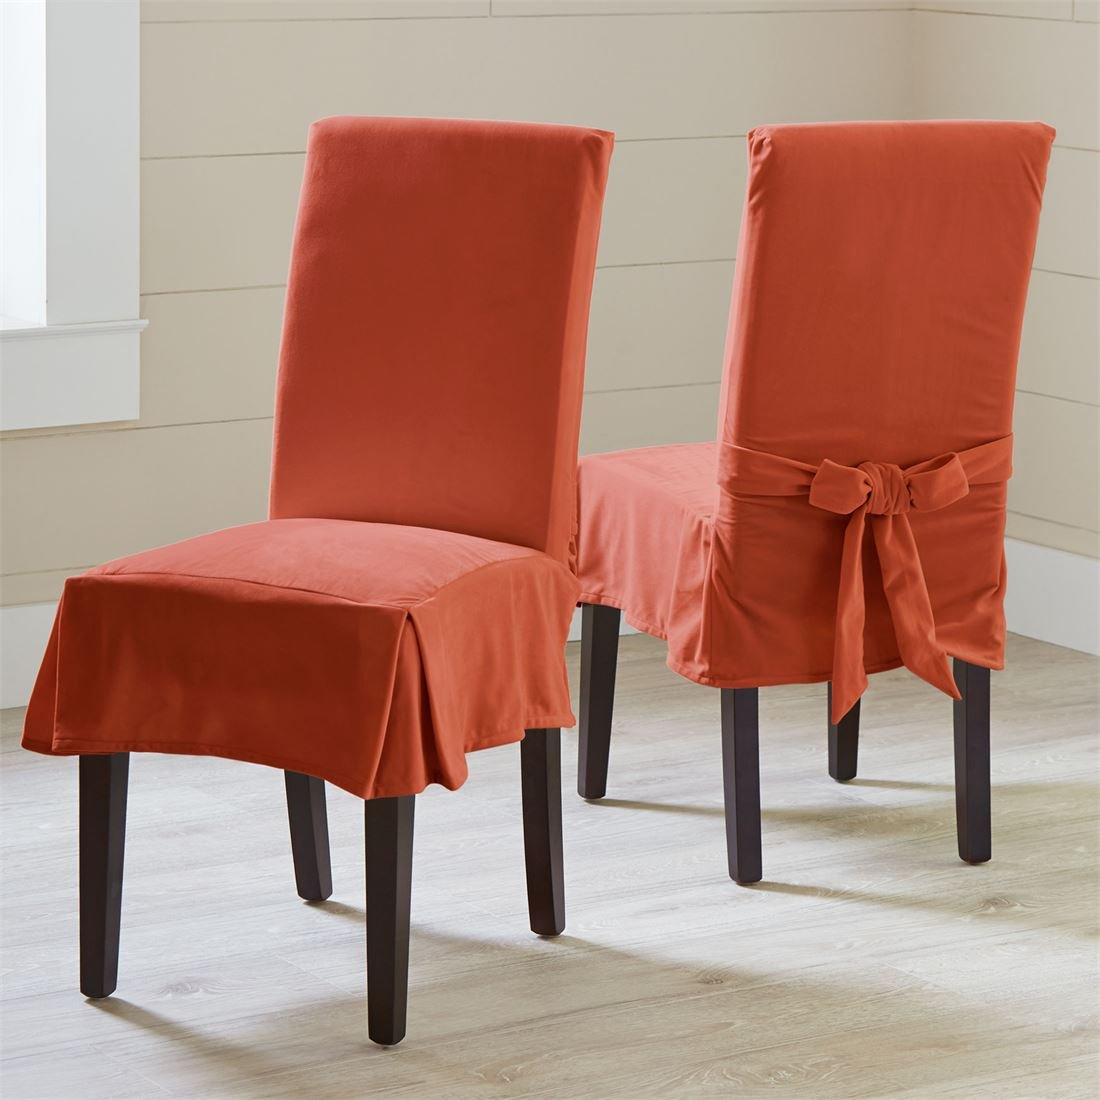 BrylaneHome Venice Velvet Chair Covers, Set Of 2 (Terracotta,0)